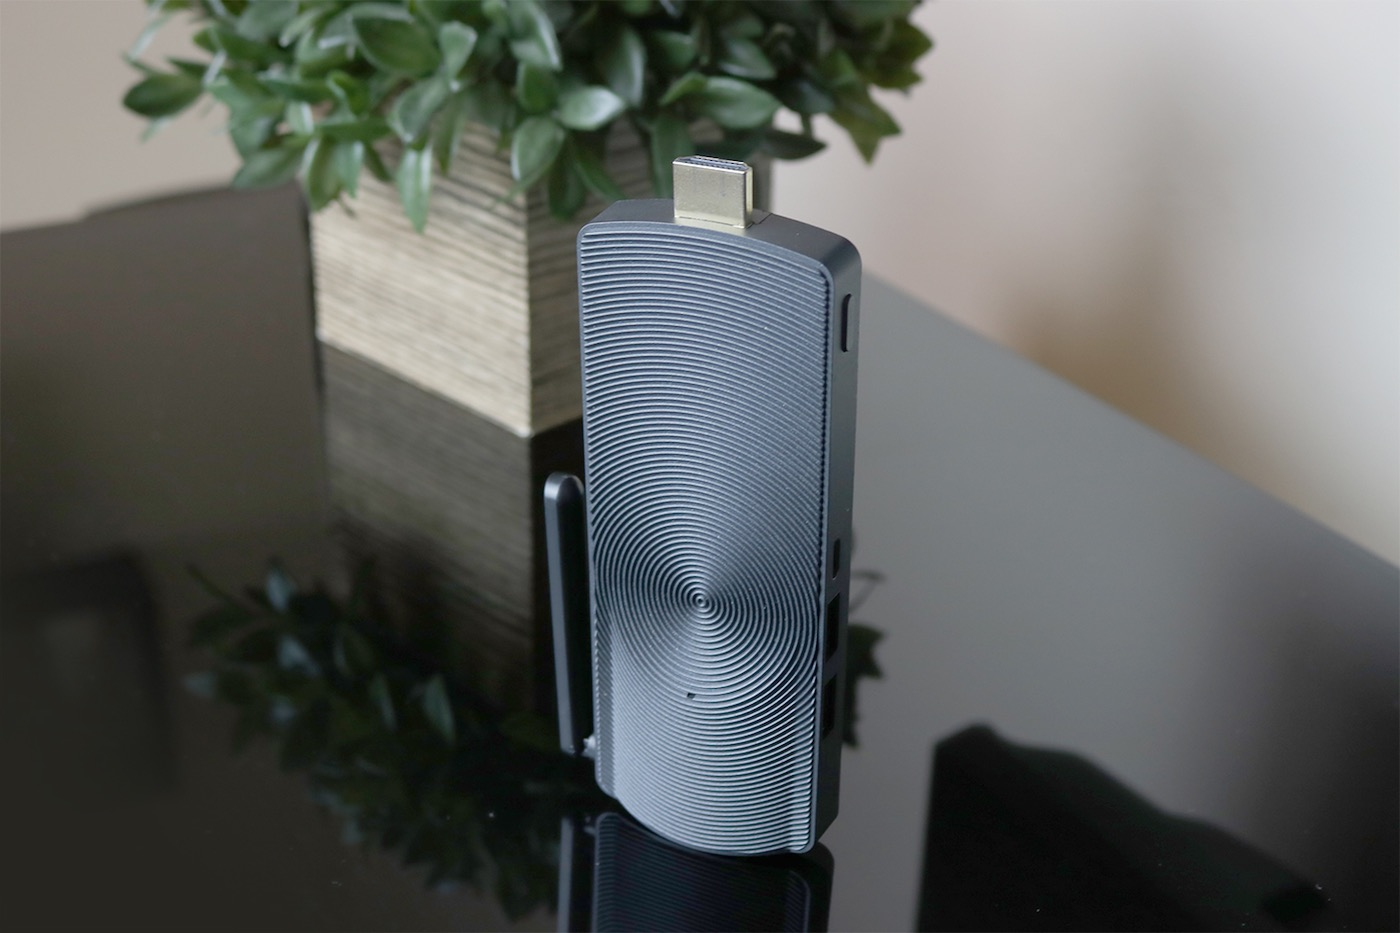 Azulle Access3 Pocket PC - A Fully-Functional Computer with